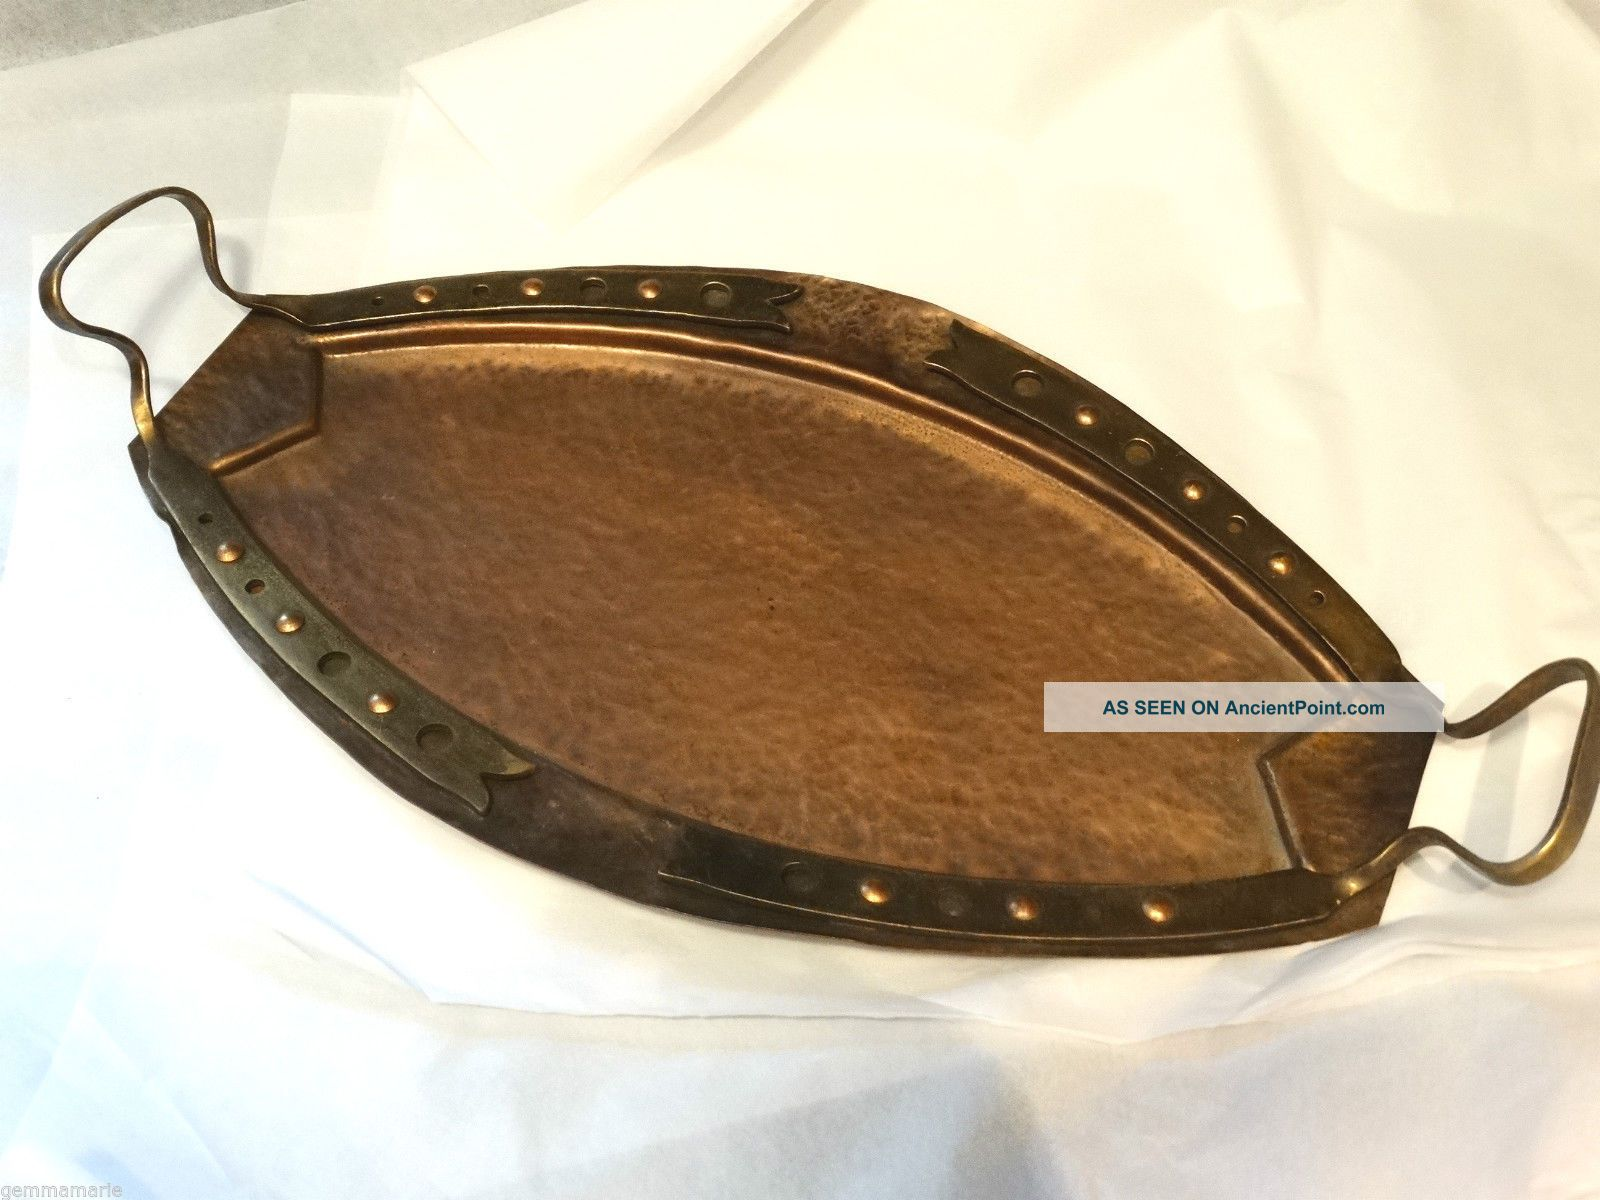 Arts Crafts Mission Copper Antique Hand Hammer Roycroft Stickley Serving Tray